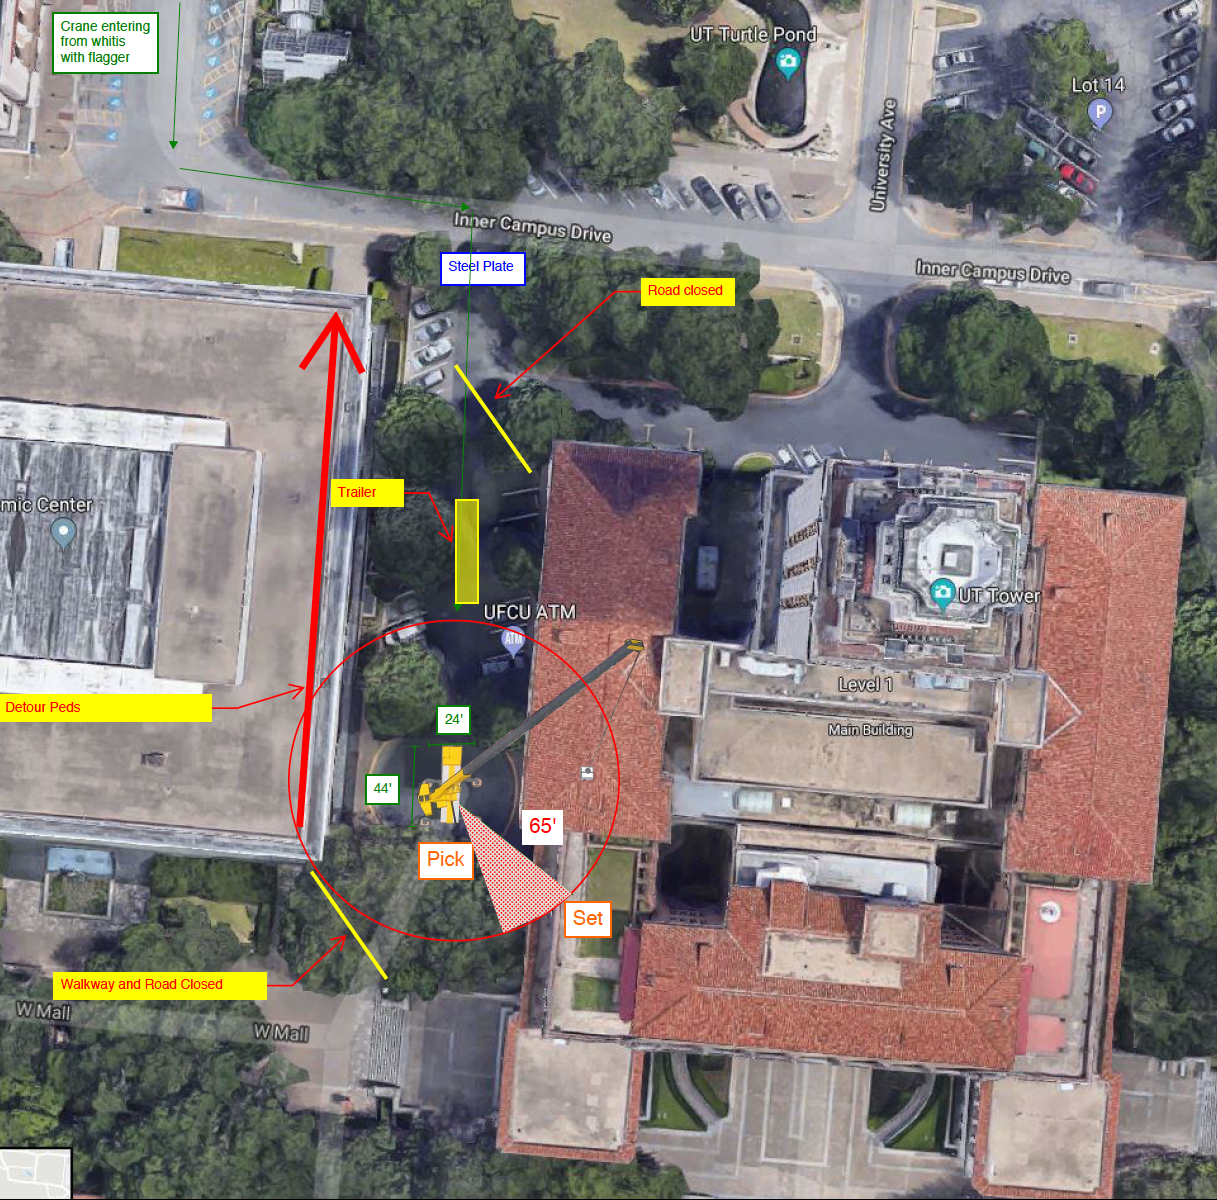 Map of Detours Around Main Building